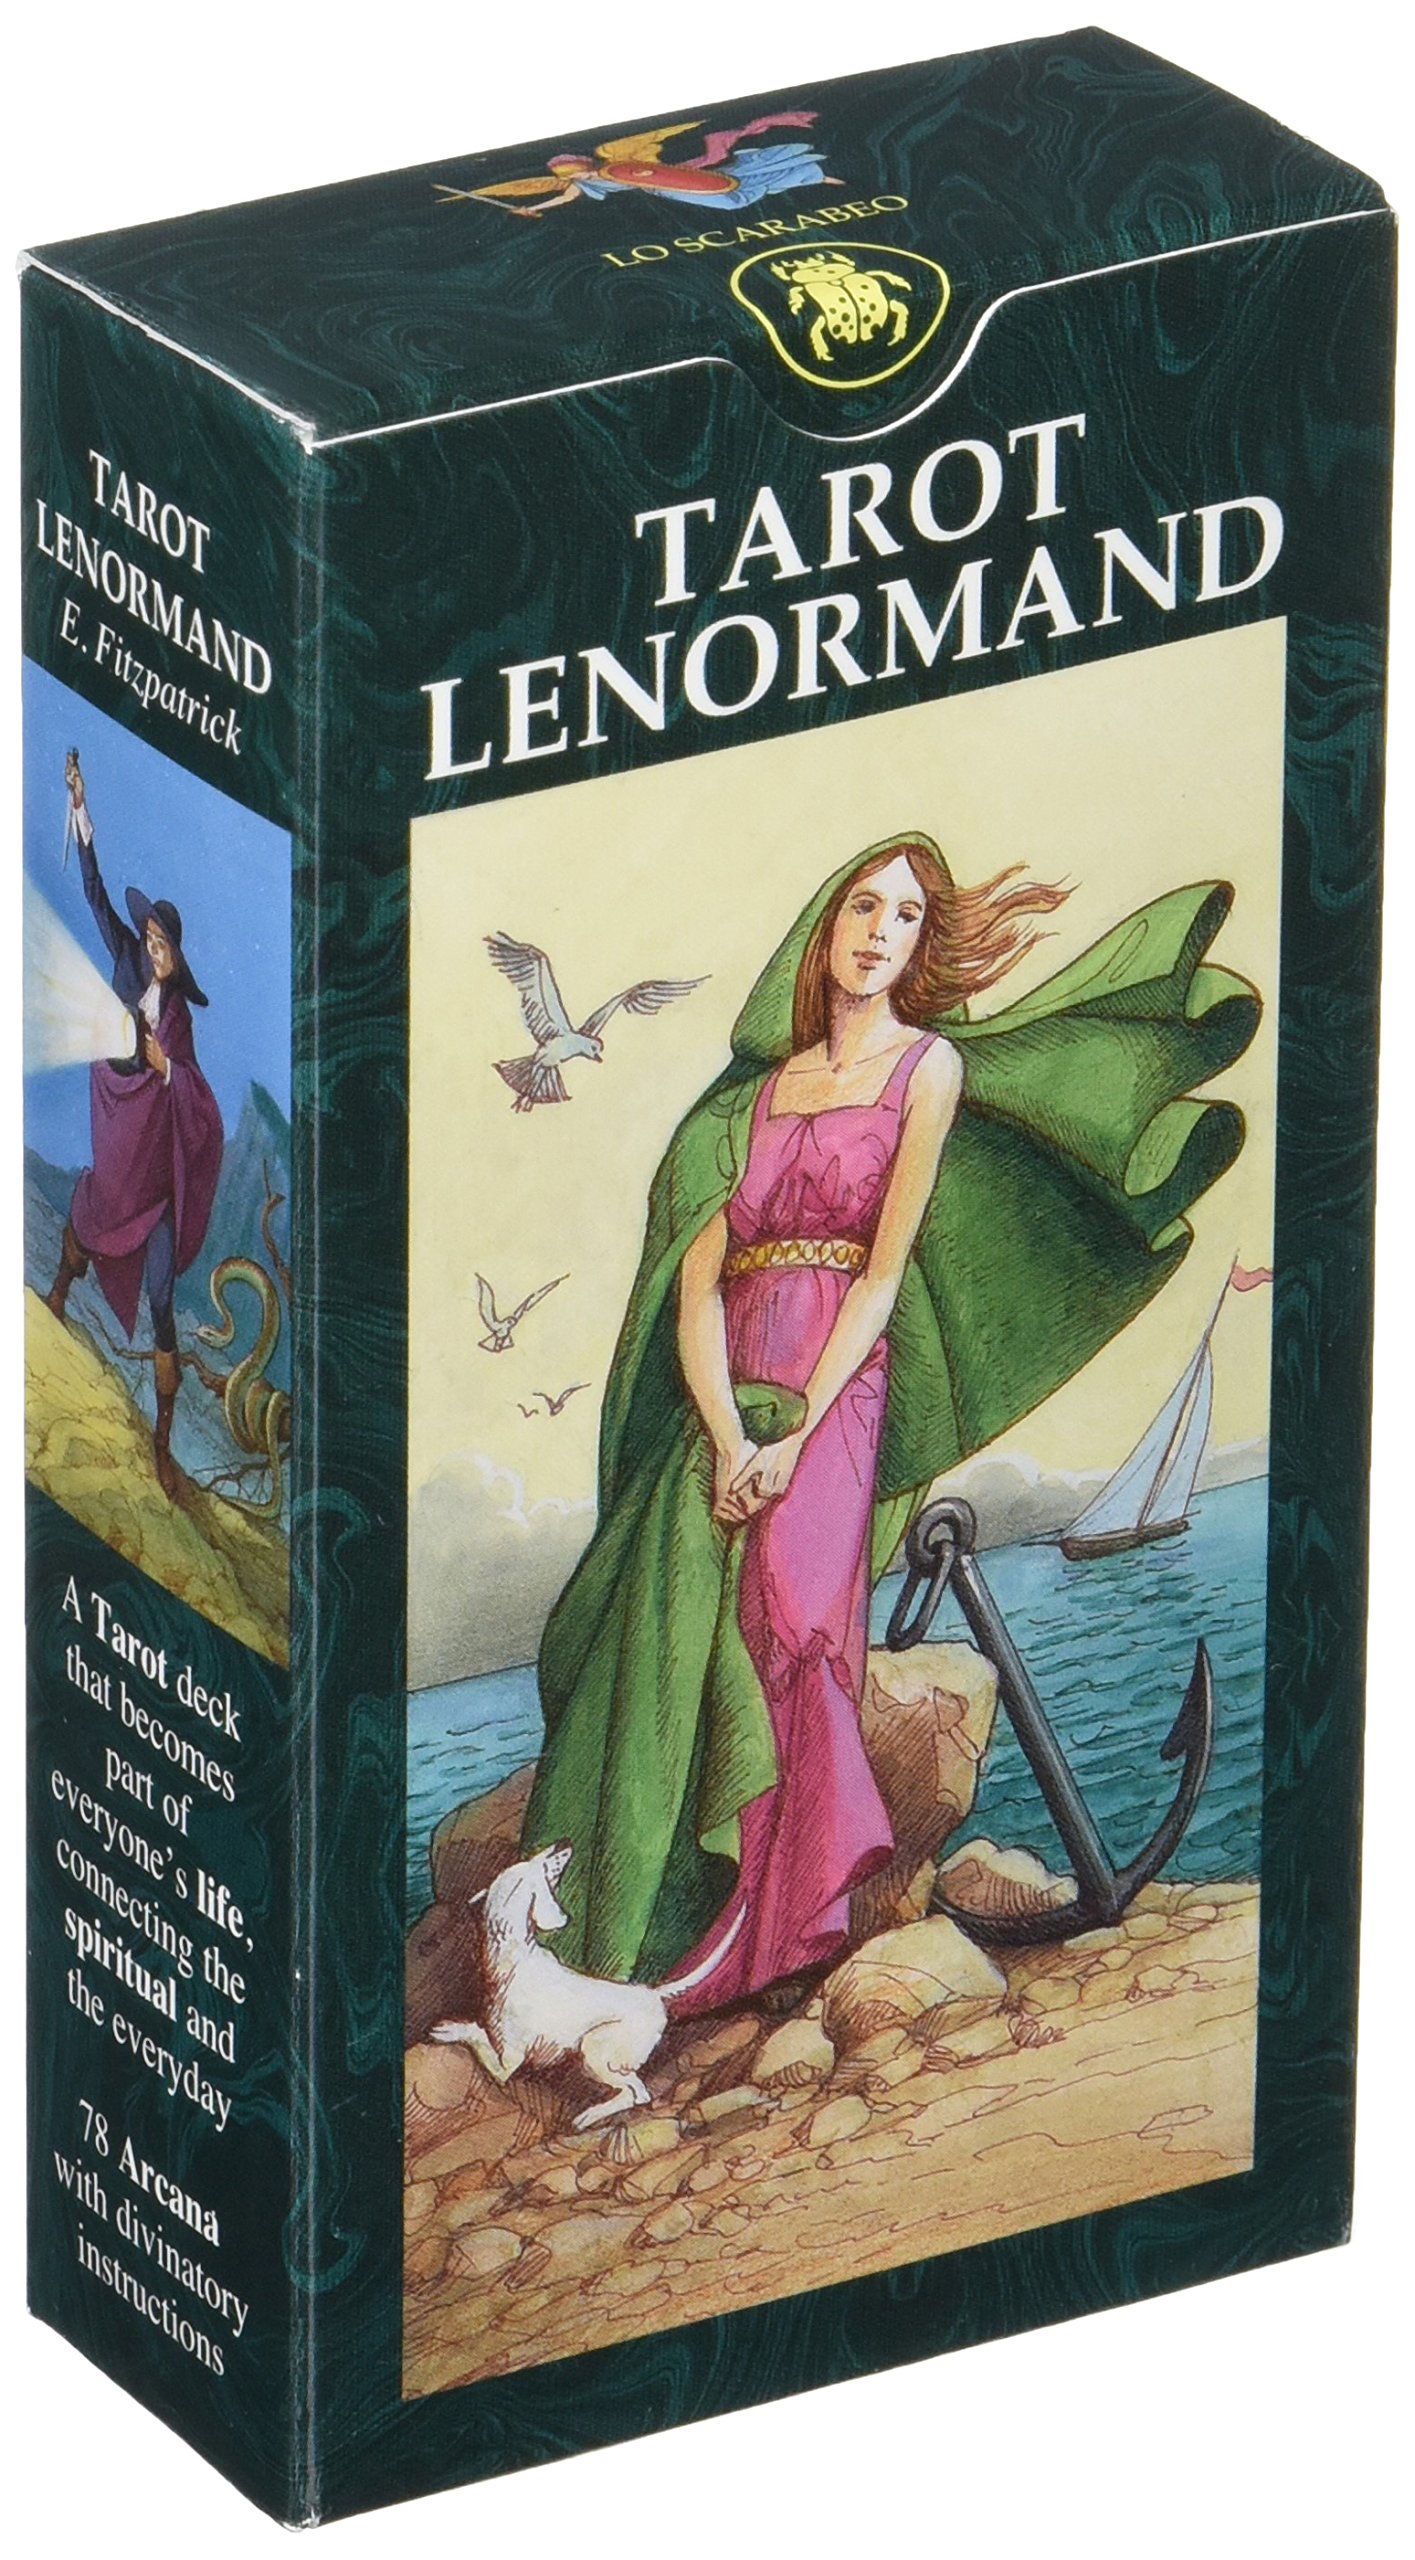 Tarot Lenormand (English and Spanish Edition): Lo Scarabeo ...